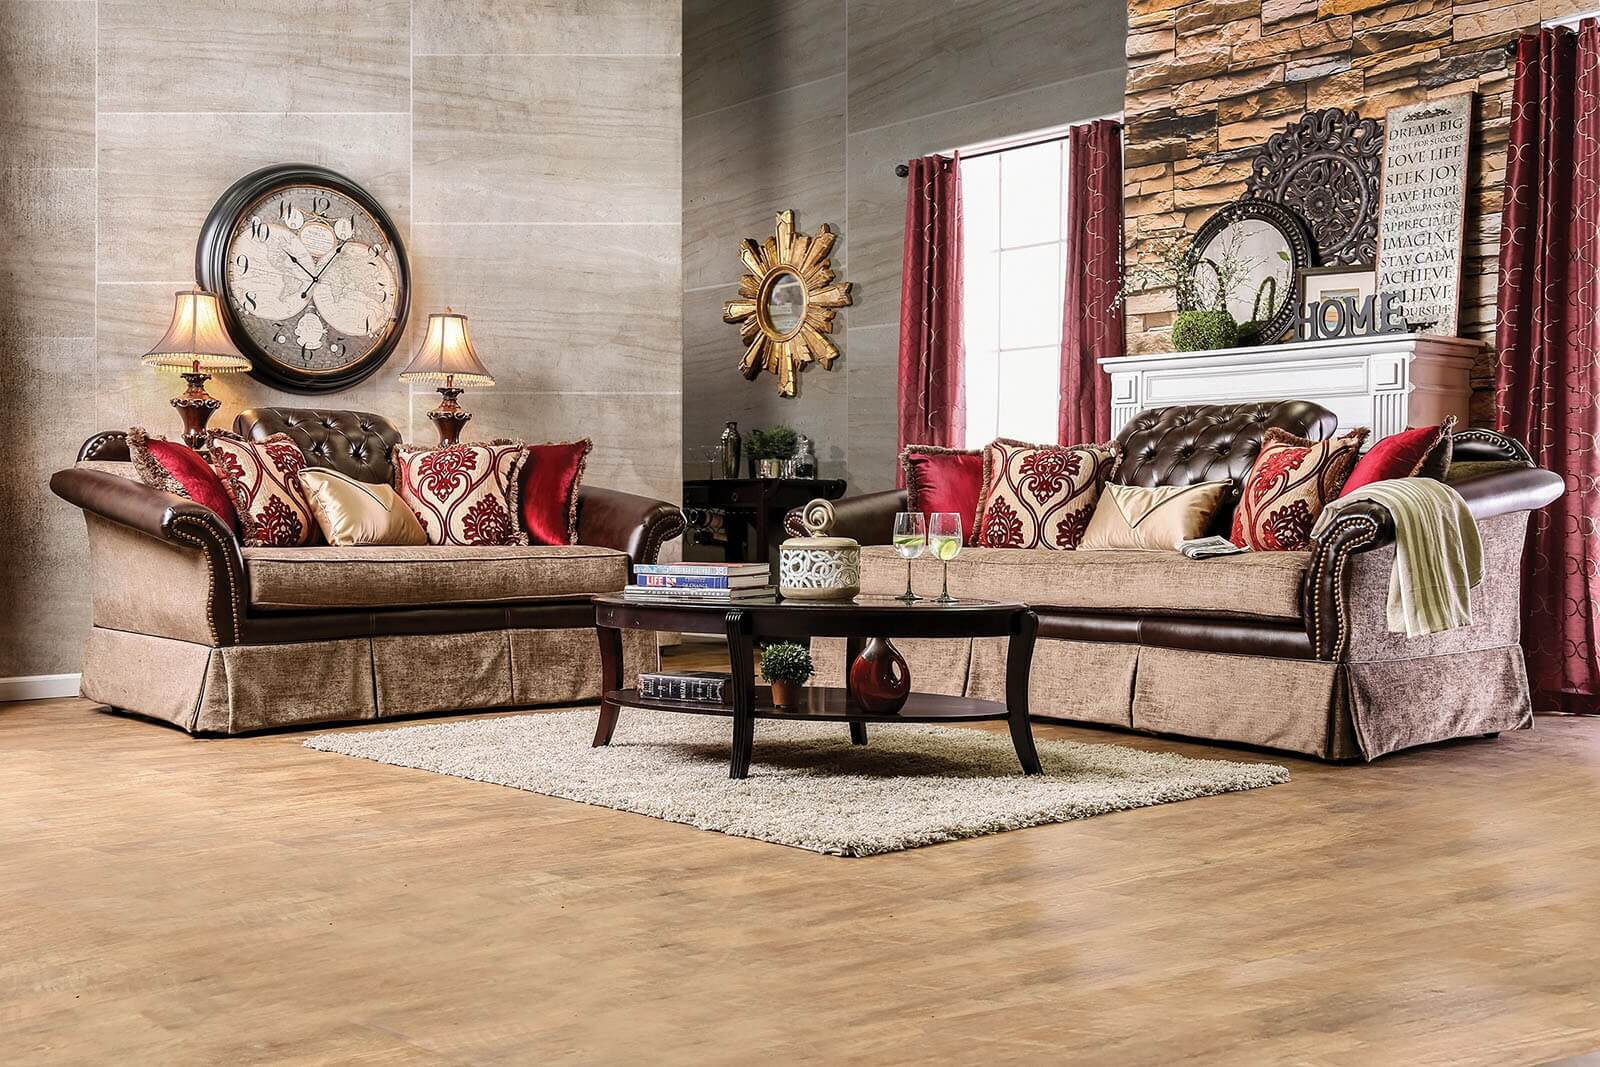 2 Piece Kinsale Traditional Leather-Fabric Sofa Set By Furniture Of America